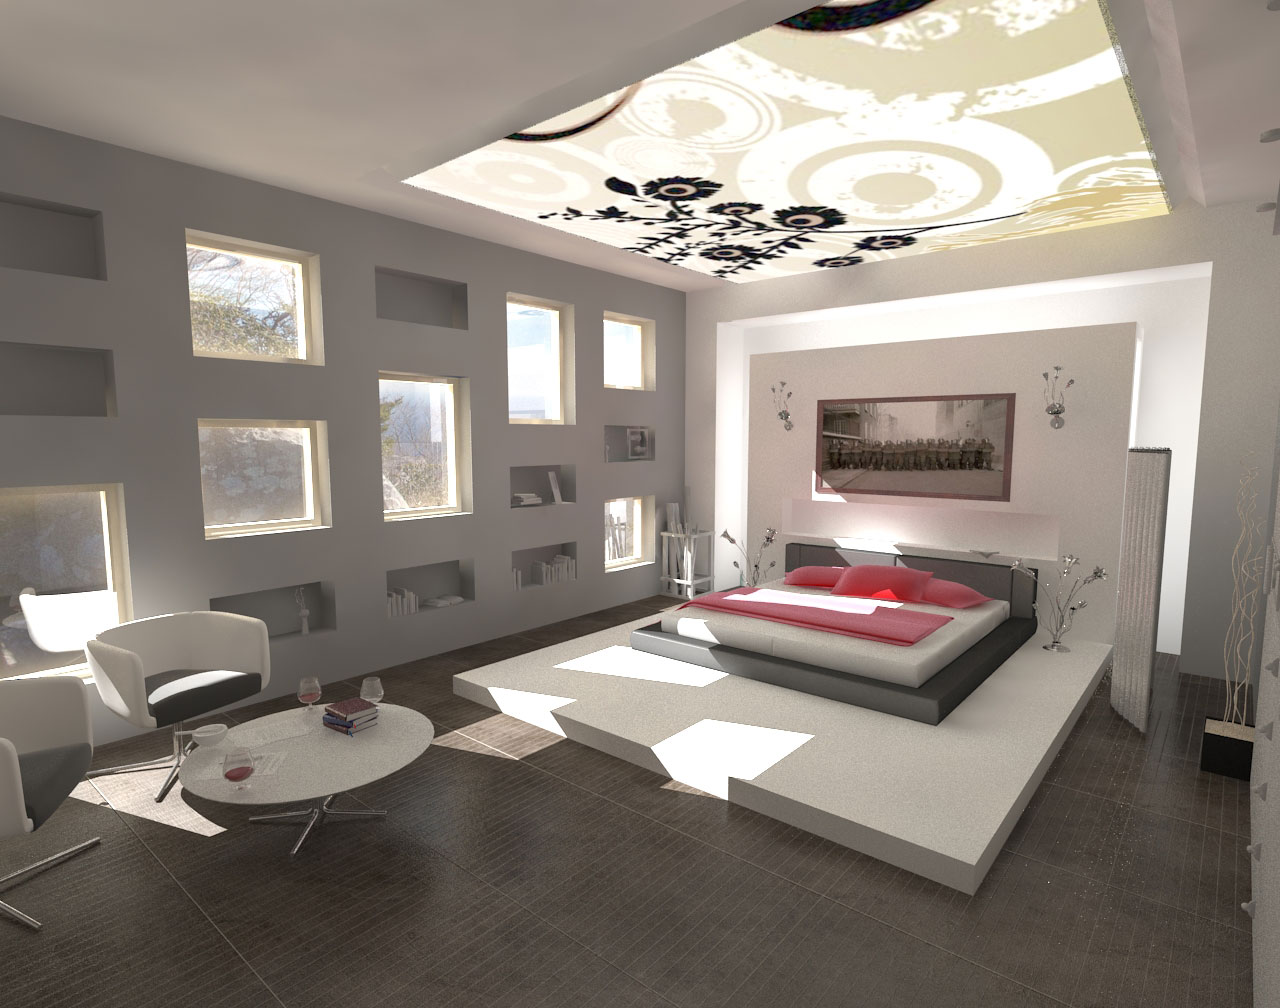 Decorations minimalist design modern bedroom interior for An interior designer